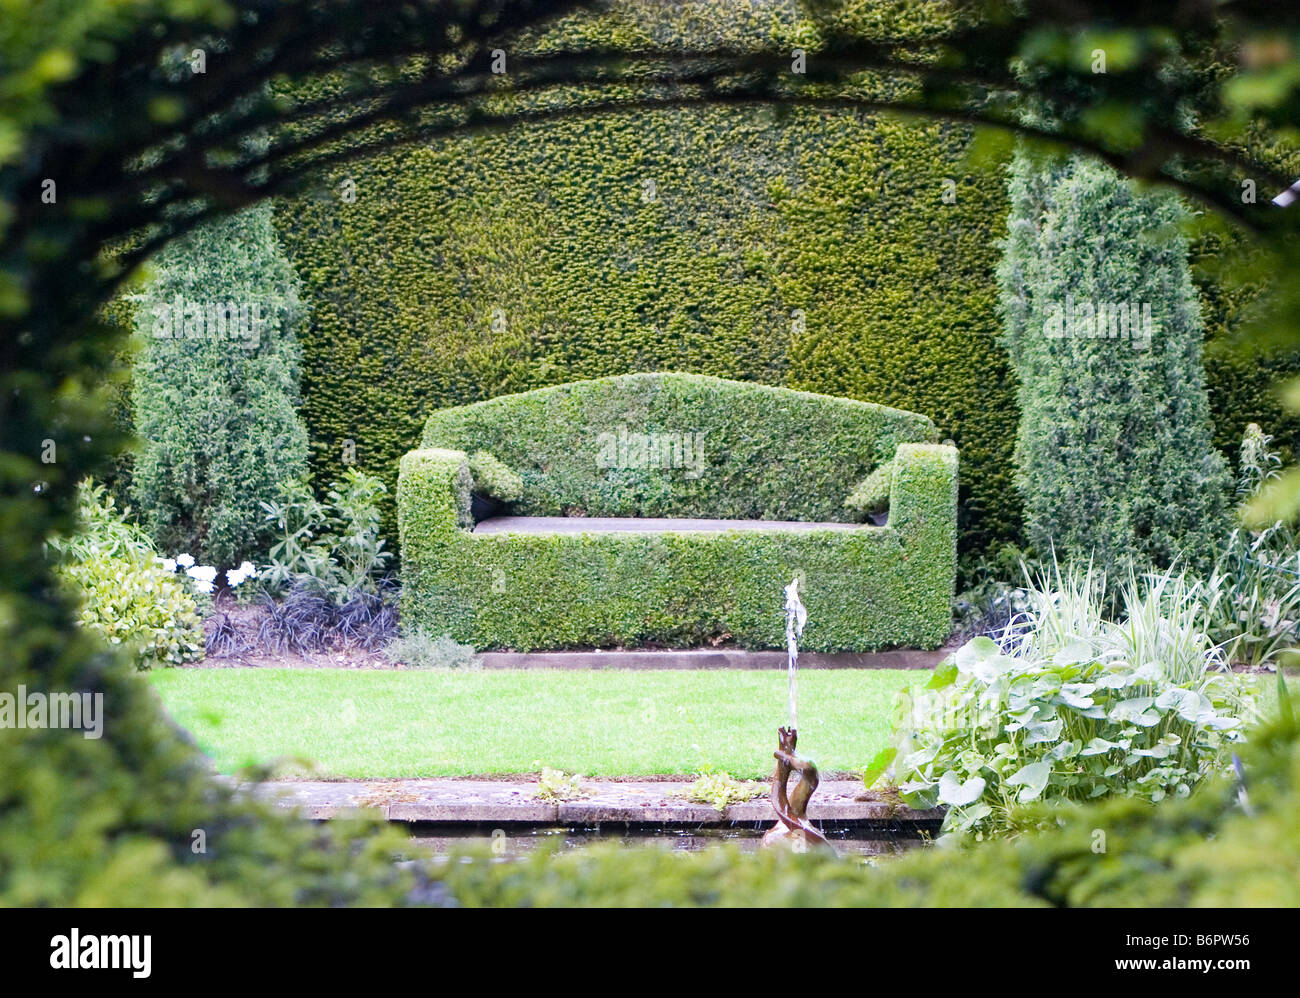 box topiary garden seat with cushions viewed through opening in hedge opposite